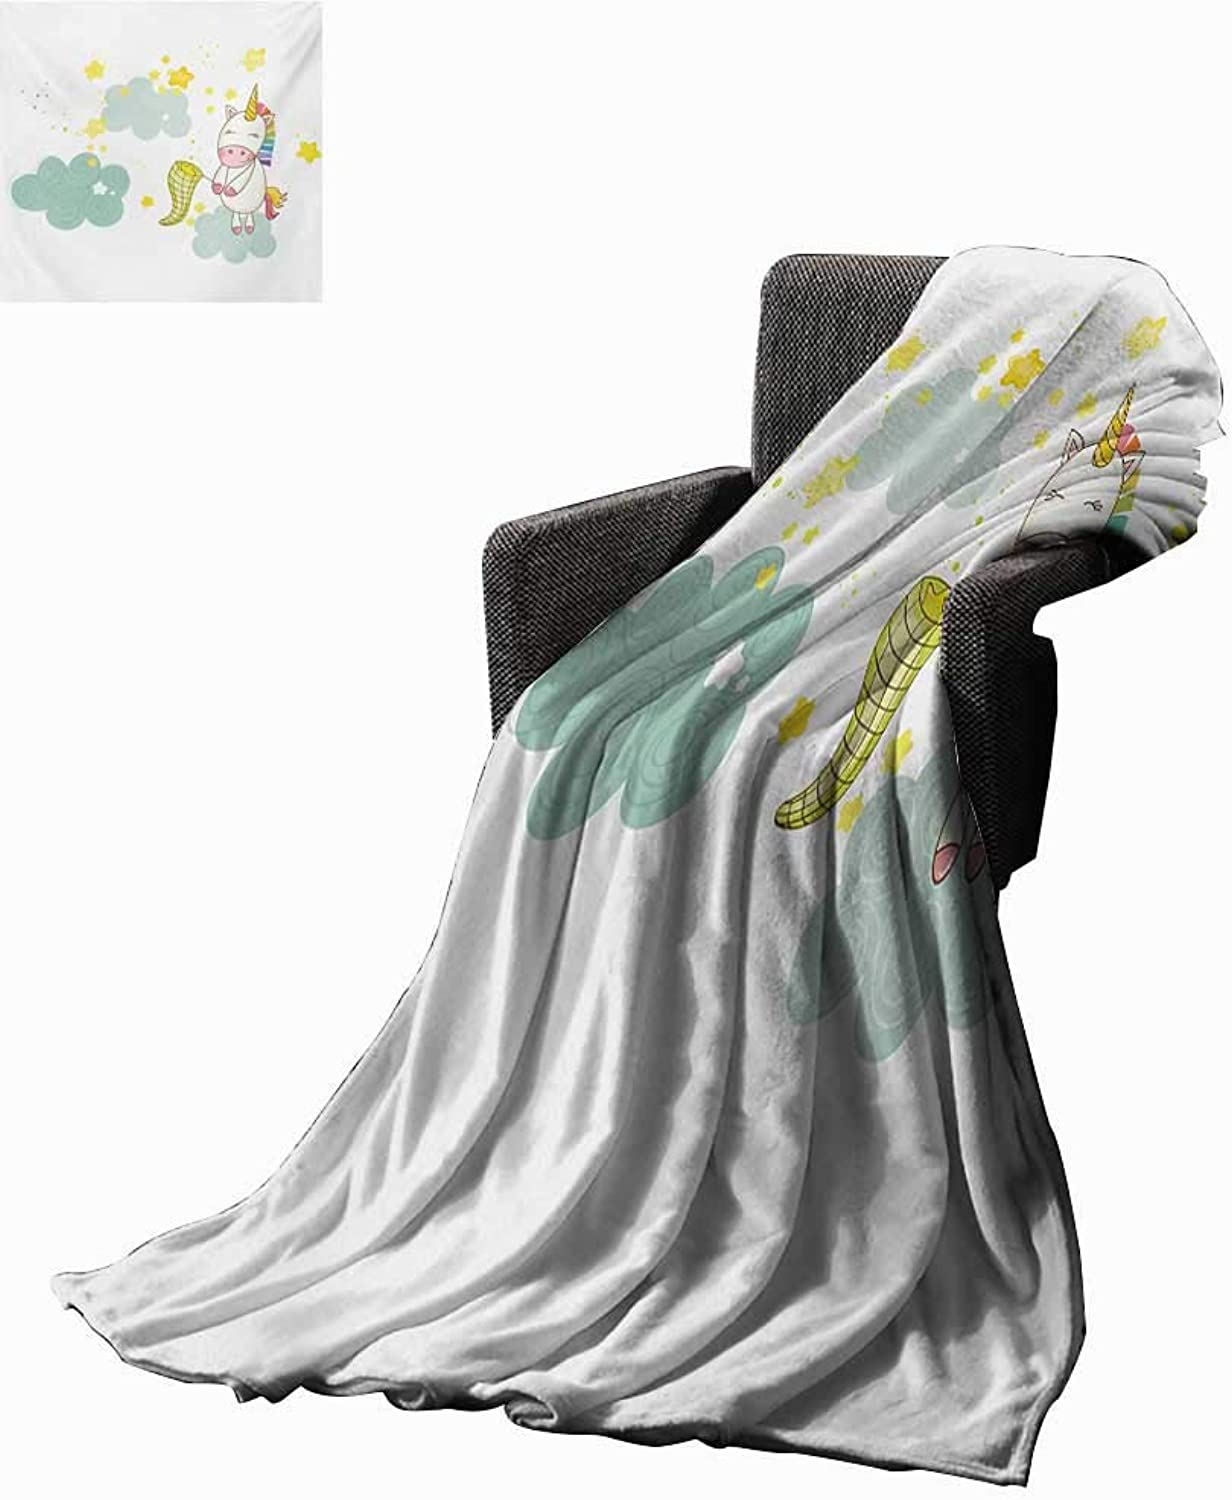 Anyangeight Unicorn Weave Pattern Extra Long Blanket Baby Mystic Unicorn Girl Sitting on Fluffy Clouds and Hunting Nursery Image Print,Super Soft and Comfortable,Suitable for Sofas,Chairs,beds